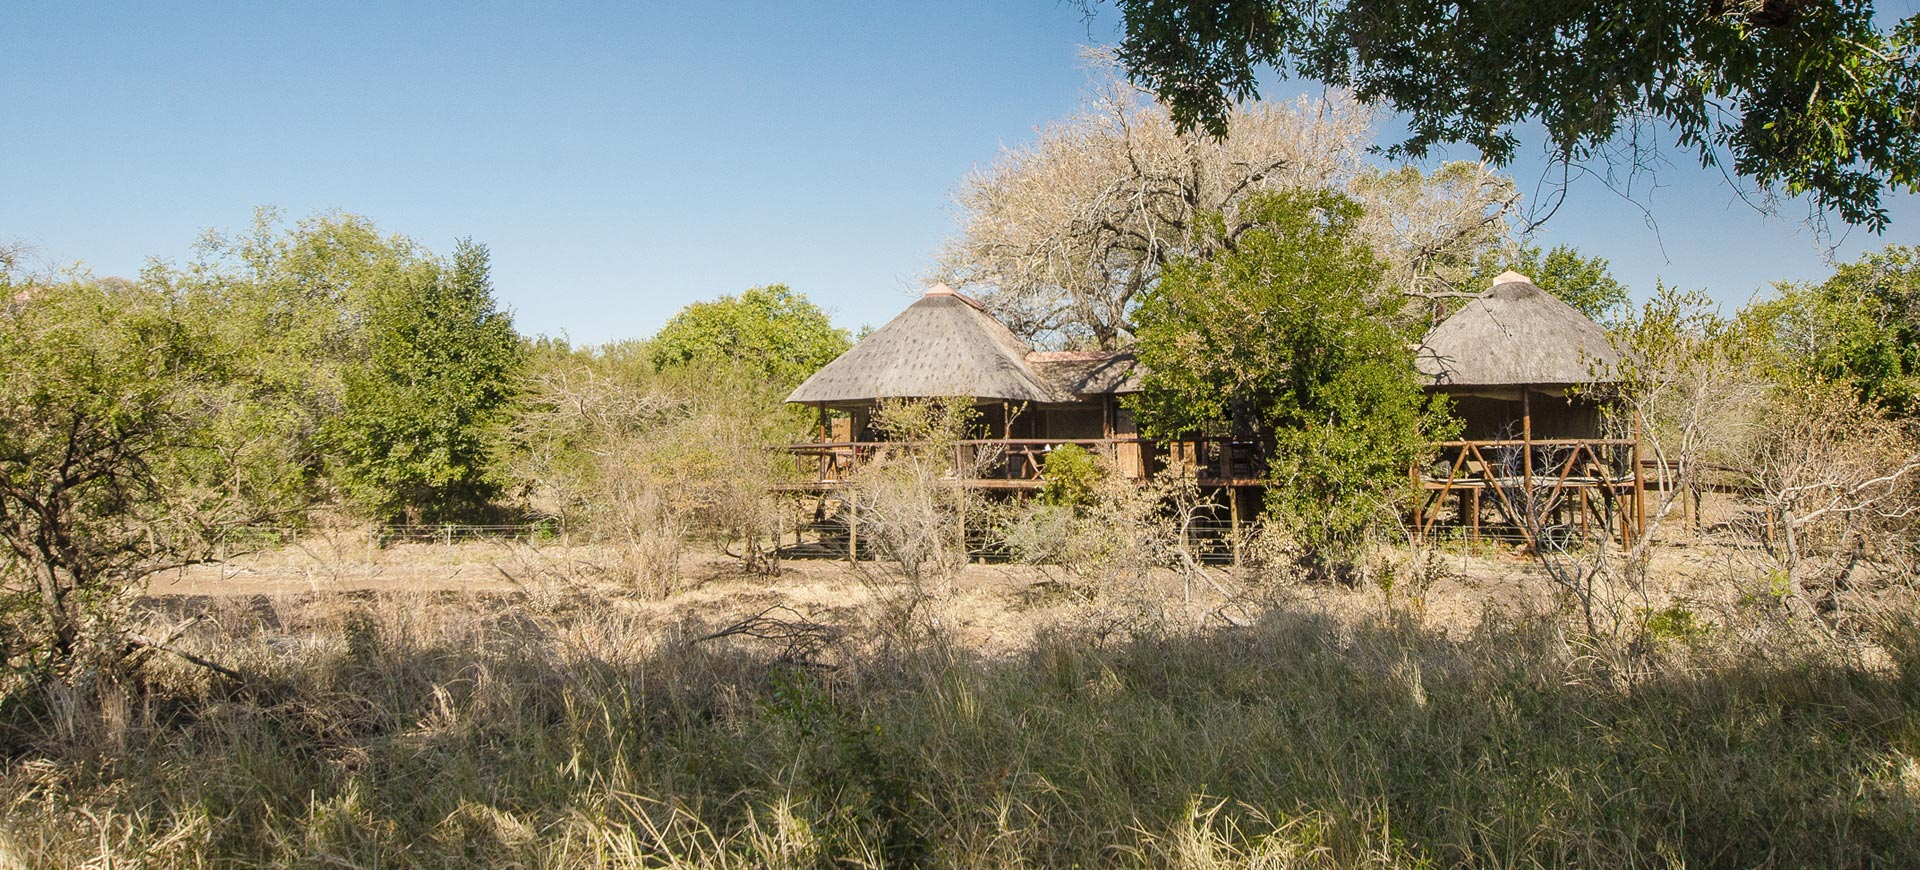 Camp Shonga Kruger Safari